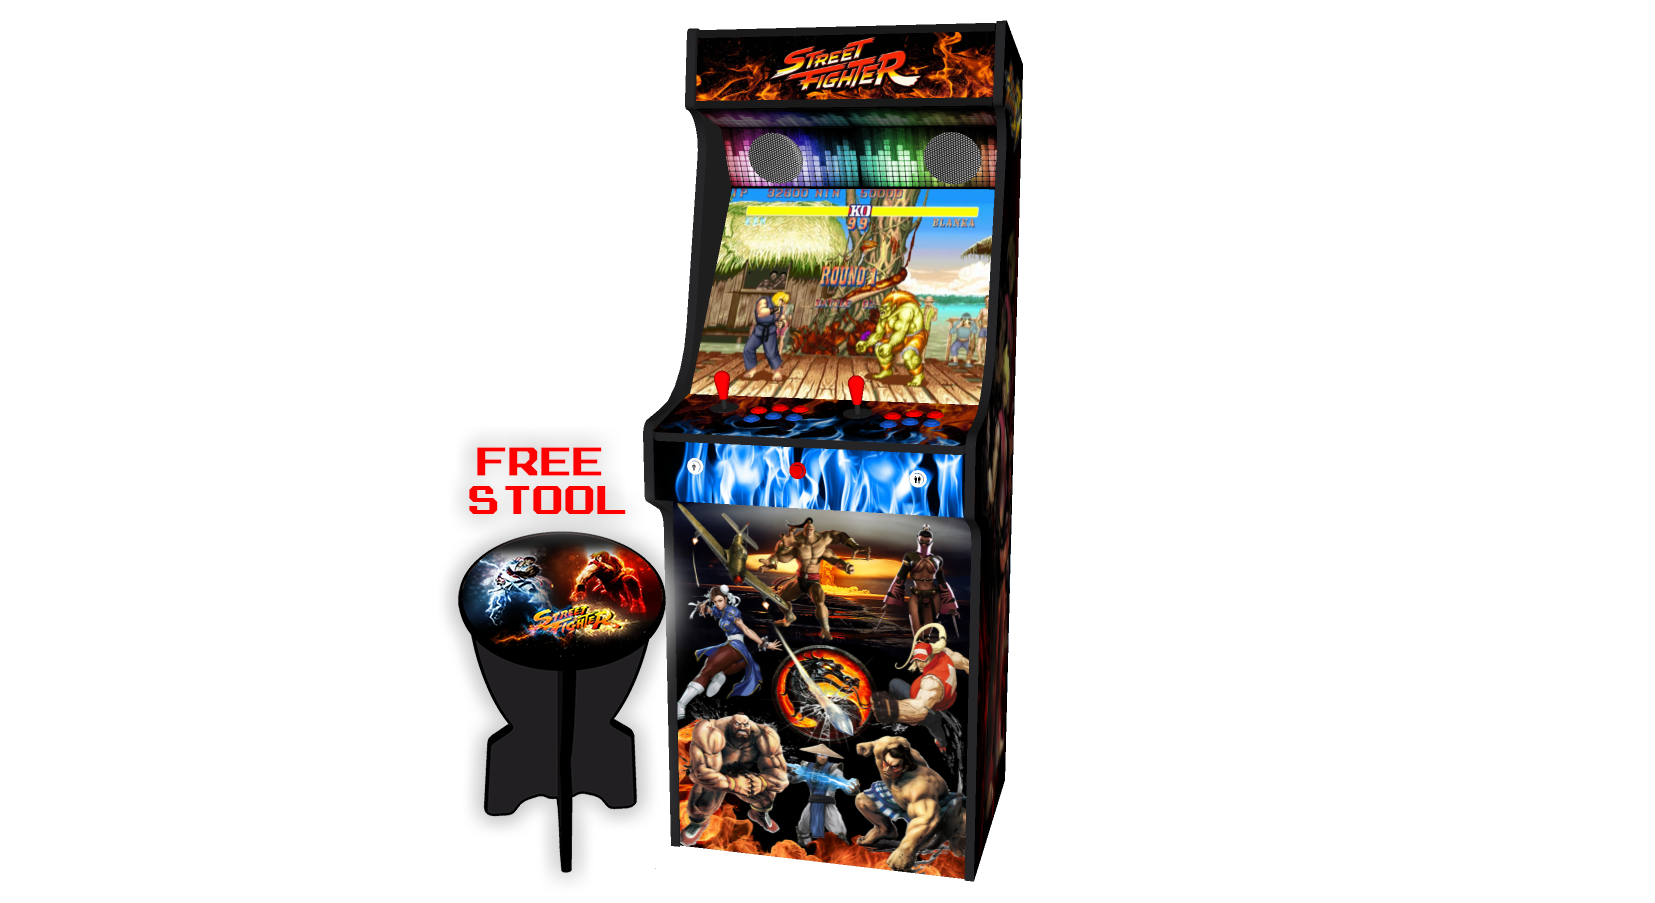 Classic-Upright-Arcade-Machine-Street-Fighter-Theme-v2-Middle-free-stool